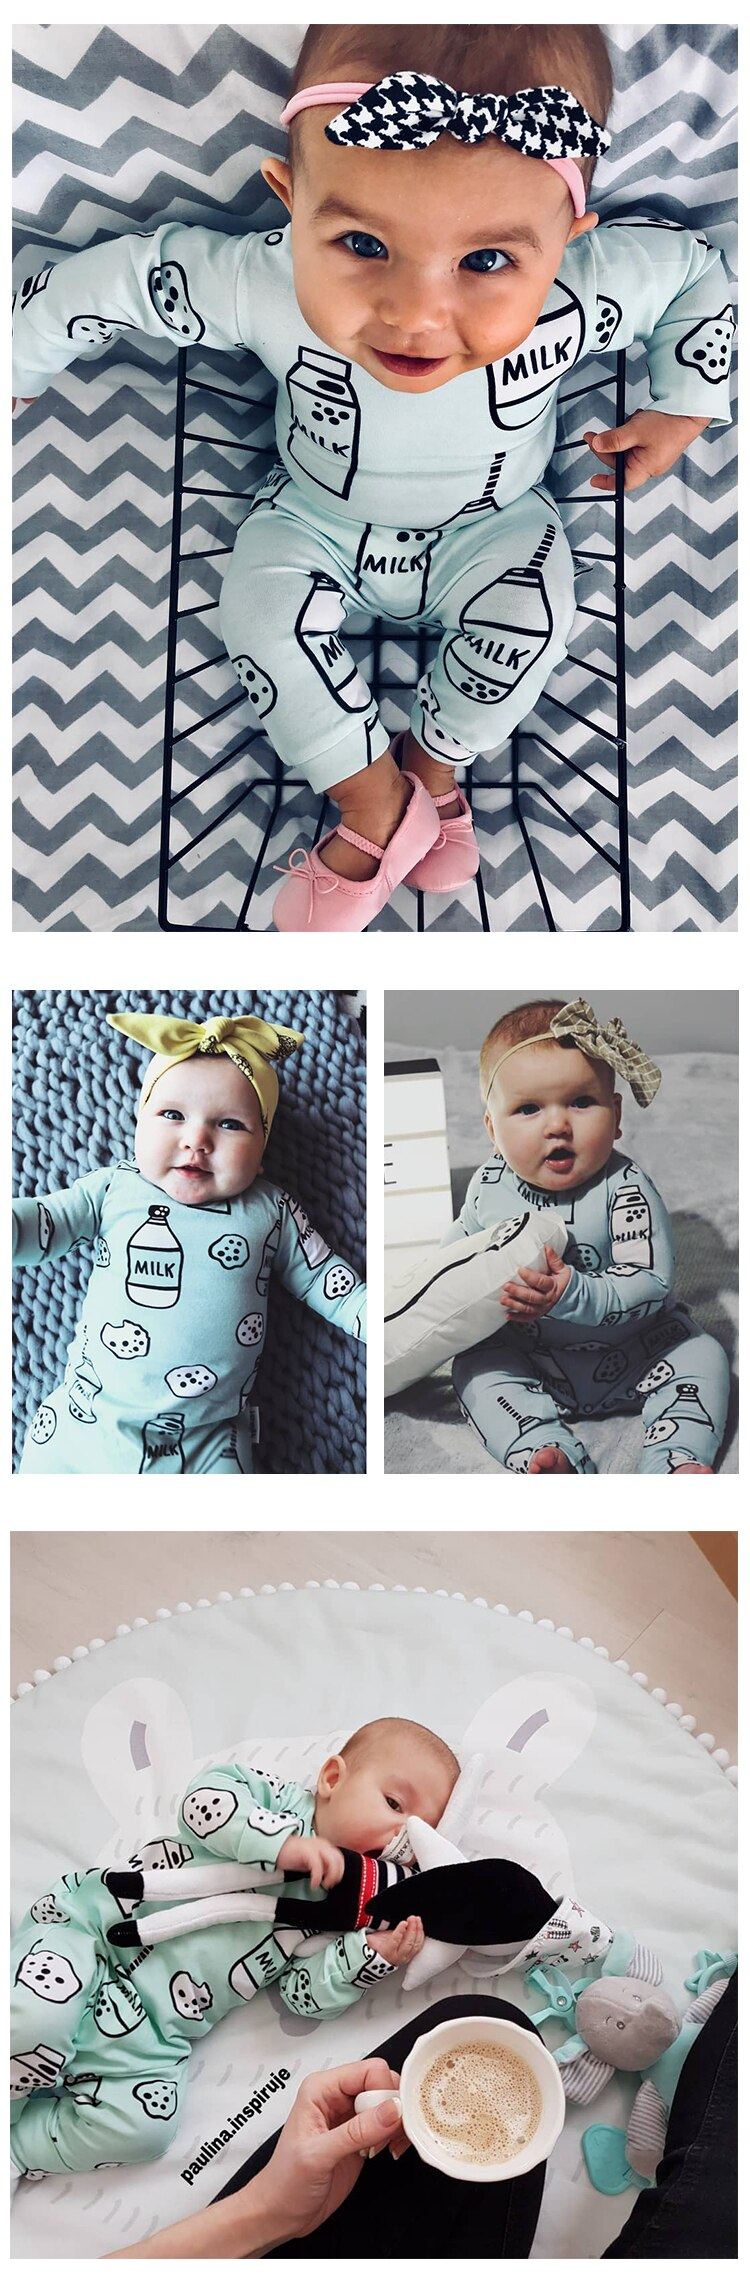 TinyPeople 2020 Baby Romper cute Print Cotton Boys onesie Newborn autumn Girls Clothes Infant Baby Clothing Long Sleeve Jumpsuit